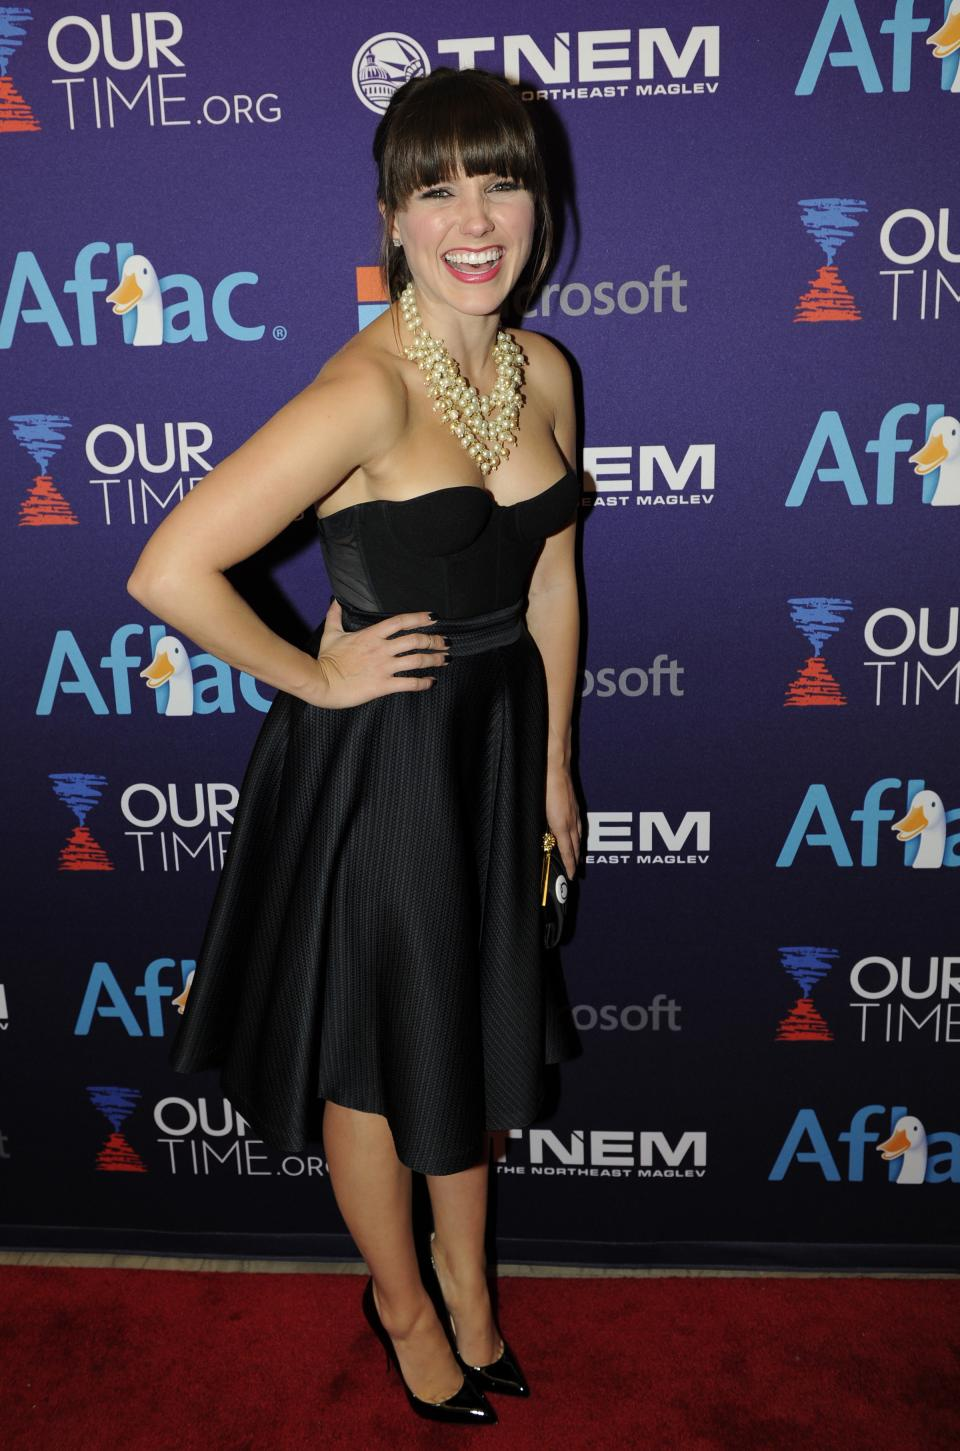 Actress Sophia Bush arrives at the OurTime.org Inaugural Youth Ball Generation Now Party on Saturday, Jan. 19, 2013, in Washington. (Photo by Nick Wass/Invision/AP)